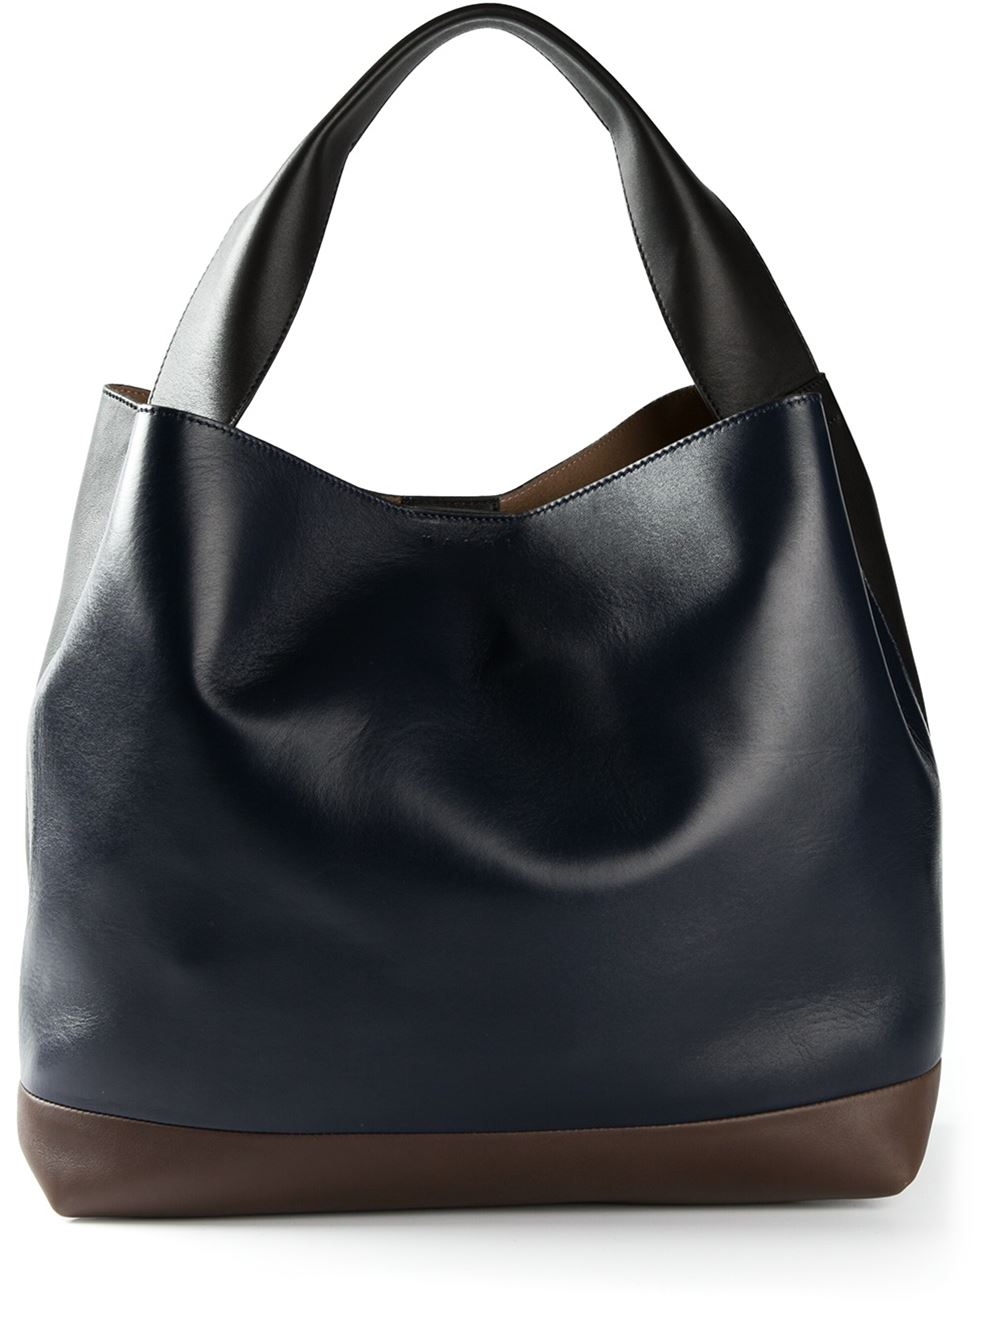 Marni Pod Bag Tote In Black